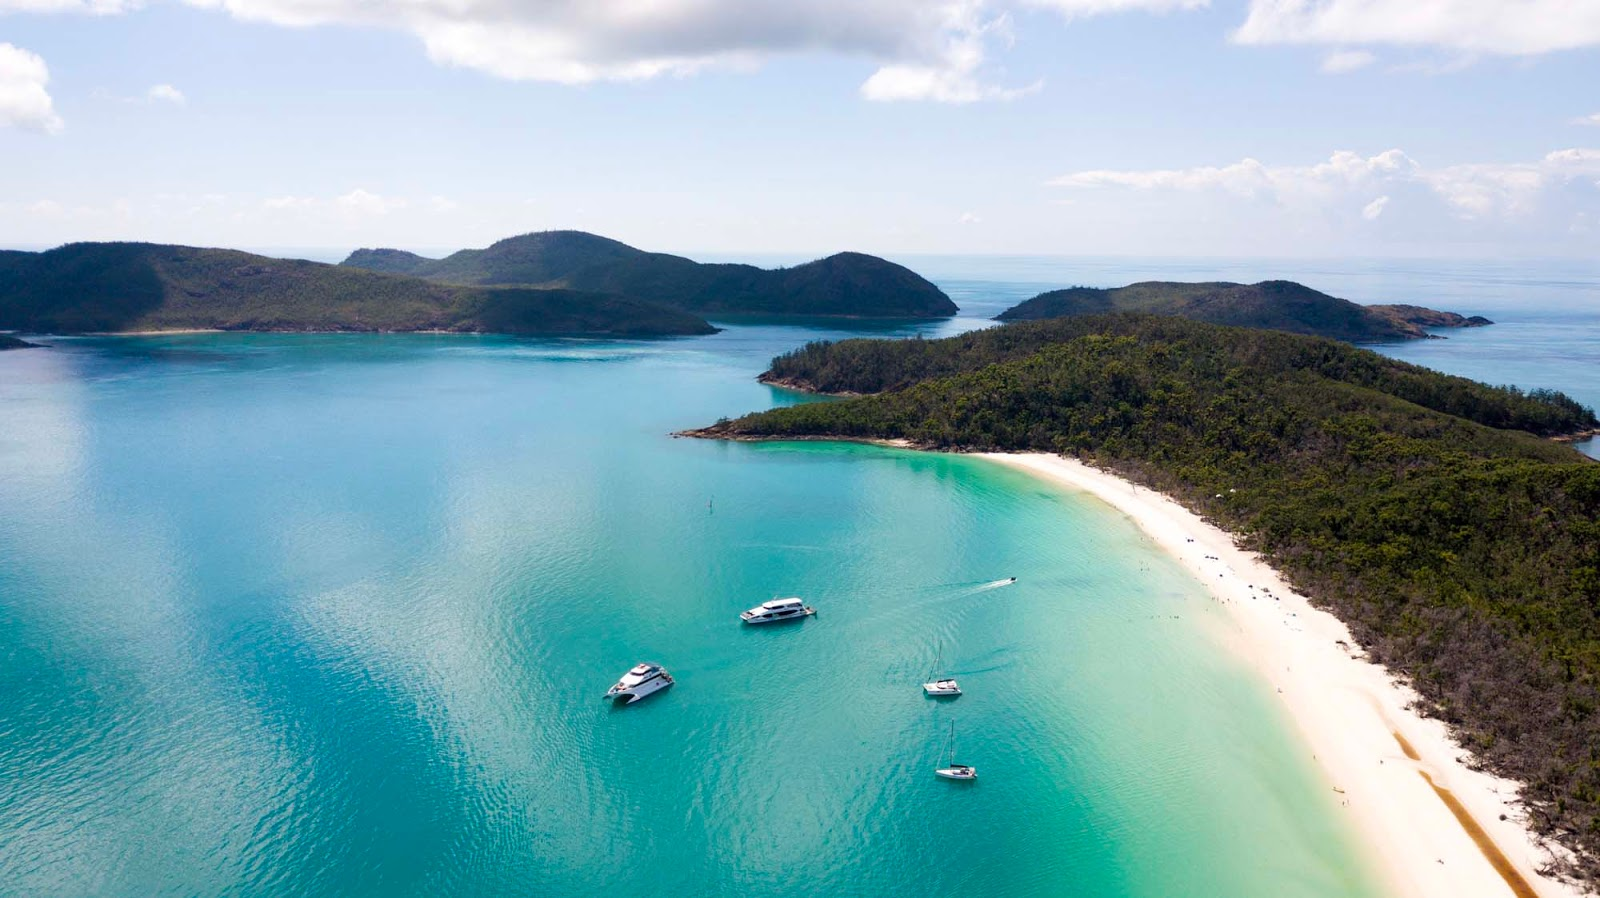 The Ultimate Day Out to the Whitsundays